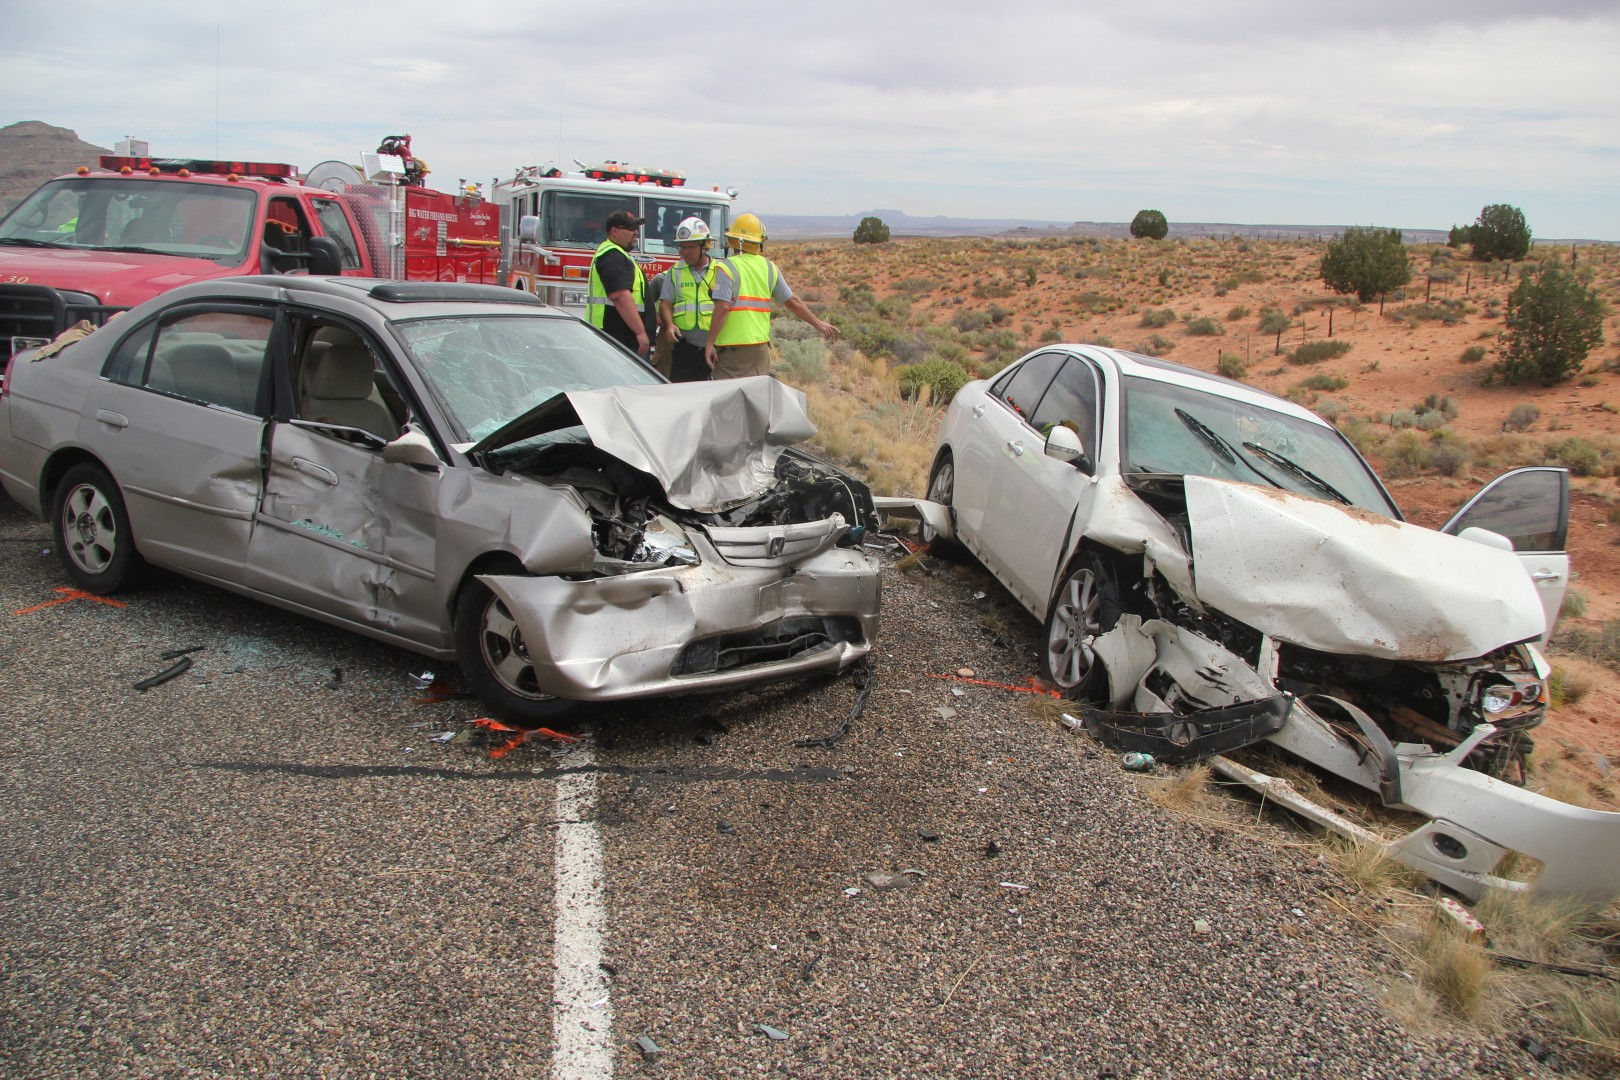 The aftermath of a head-on collision on state Route 89 in Kane County, Utah, Aug. 30, 2014   Photo courtesy of Utah Highway Patrol, St. George News